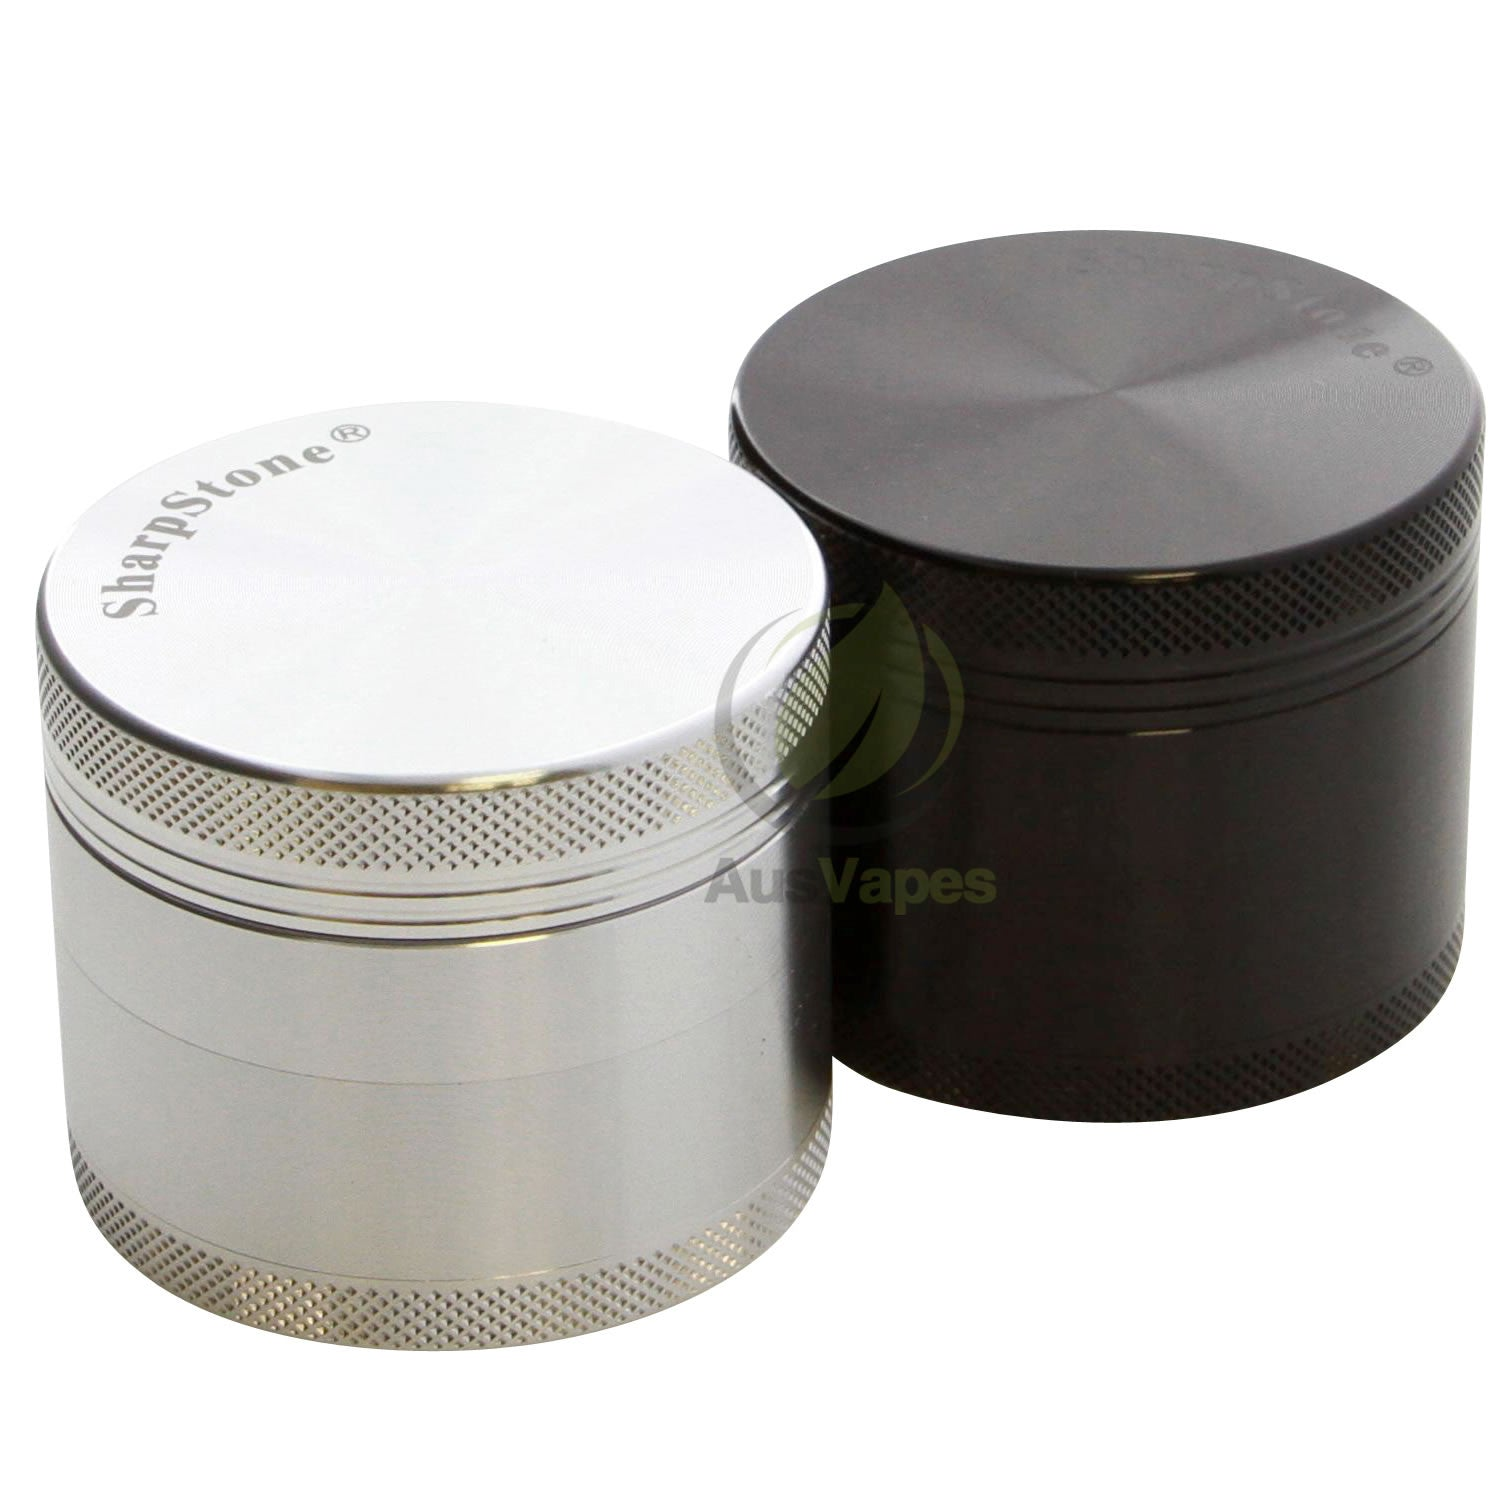 DISCONTINUED Sharpstone 56mm 4pc Solid Top Grinder